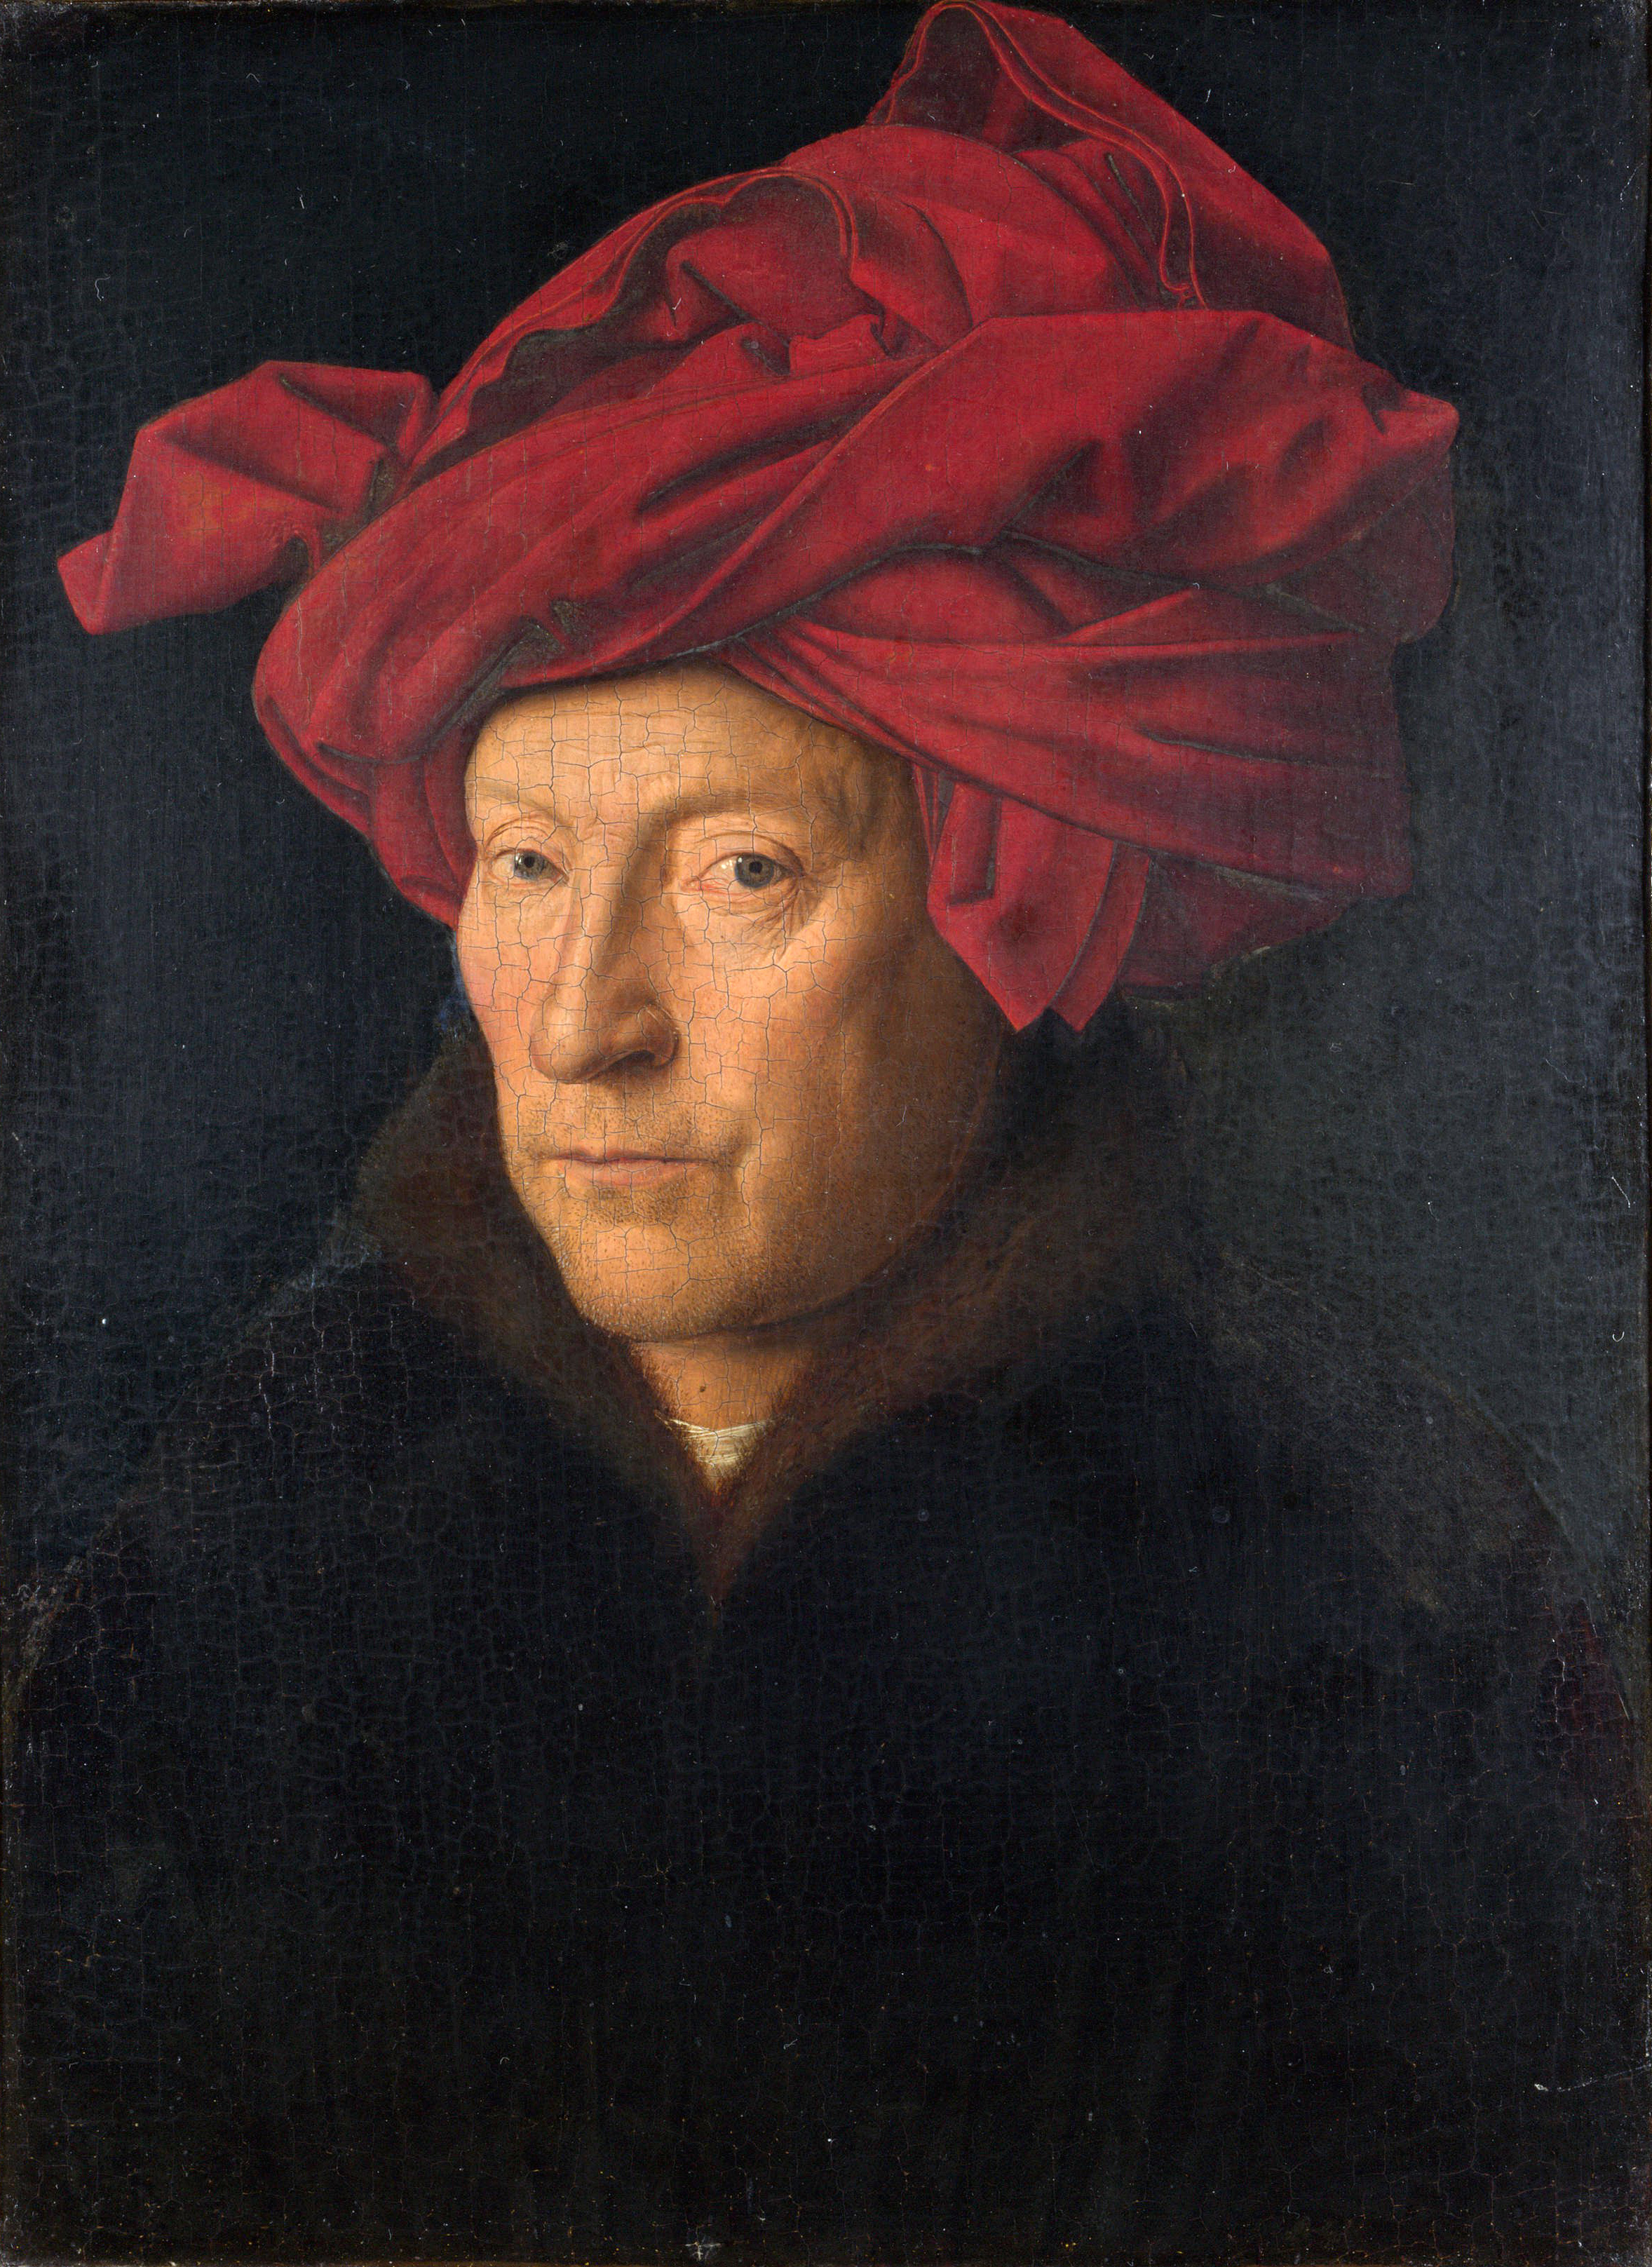 Jan Van Eyck, 'Portrait of a Man (Self Portrait?)'